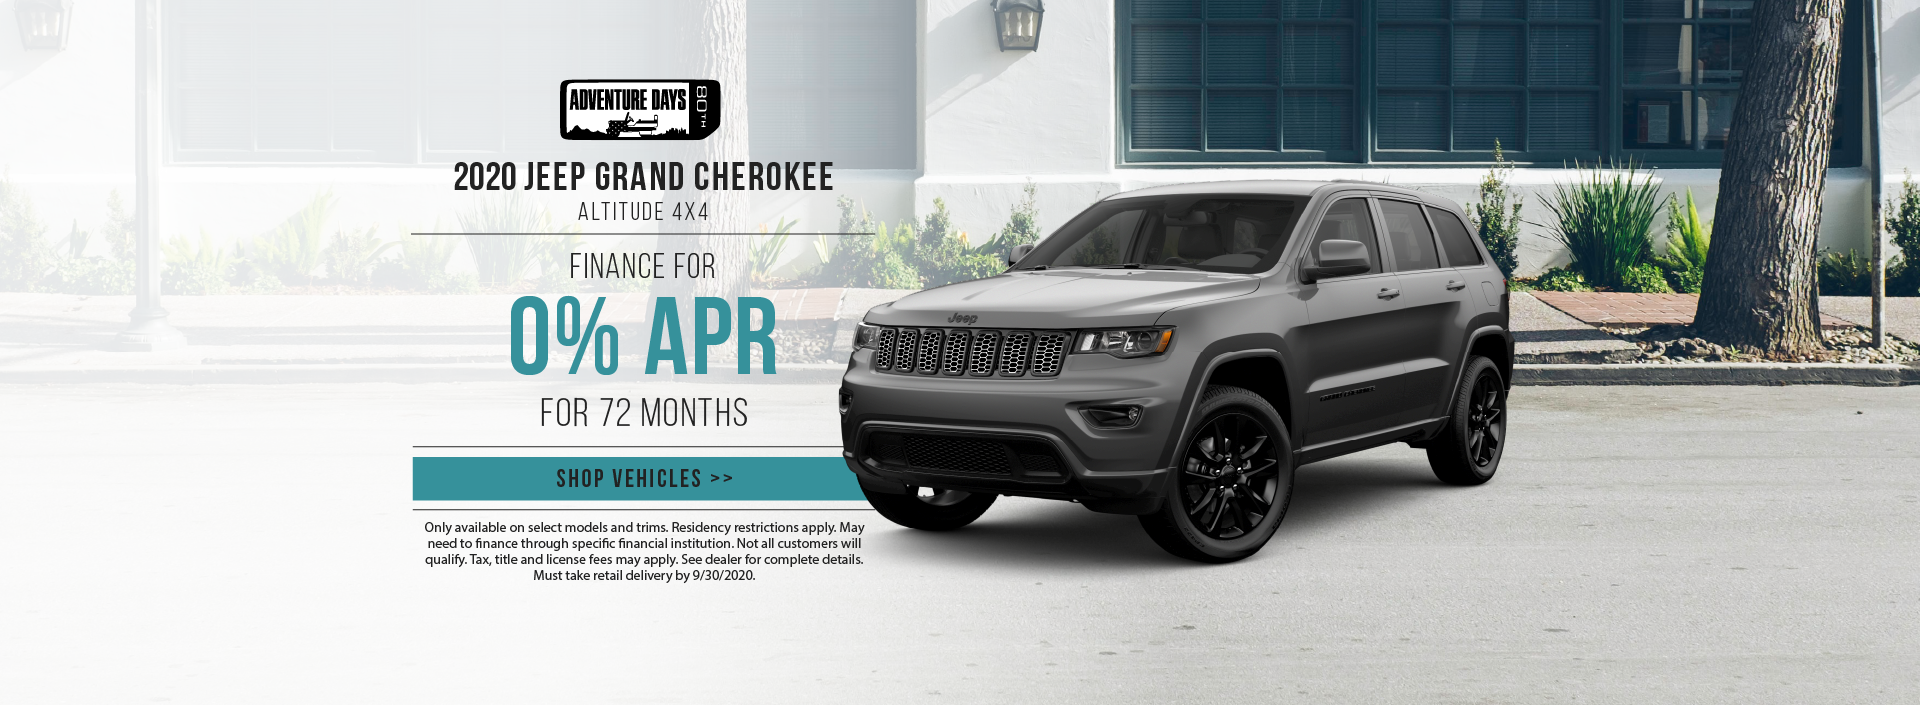 2020 Jeep Grand Cherokee Offer